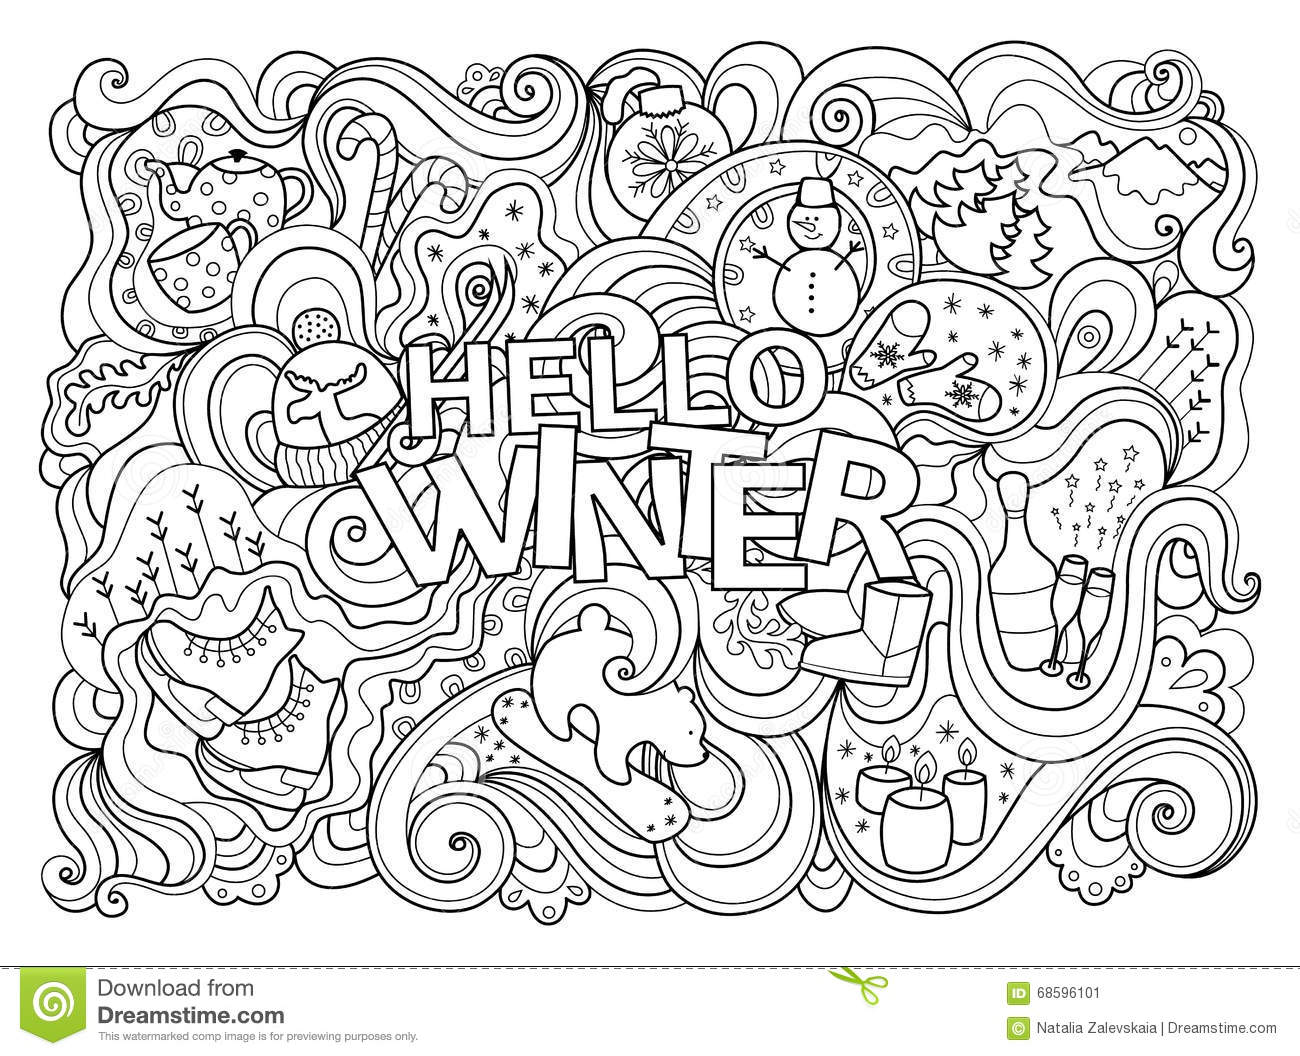 Winter Doodle Coloring Pages 1111 - a-k-b.info